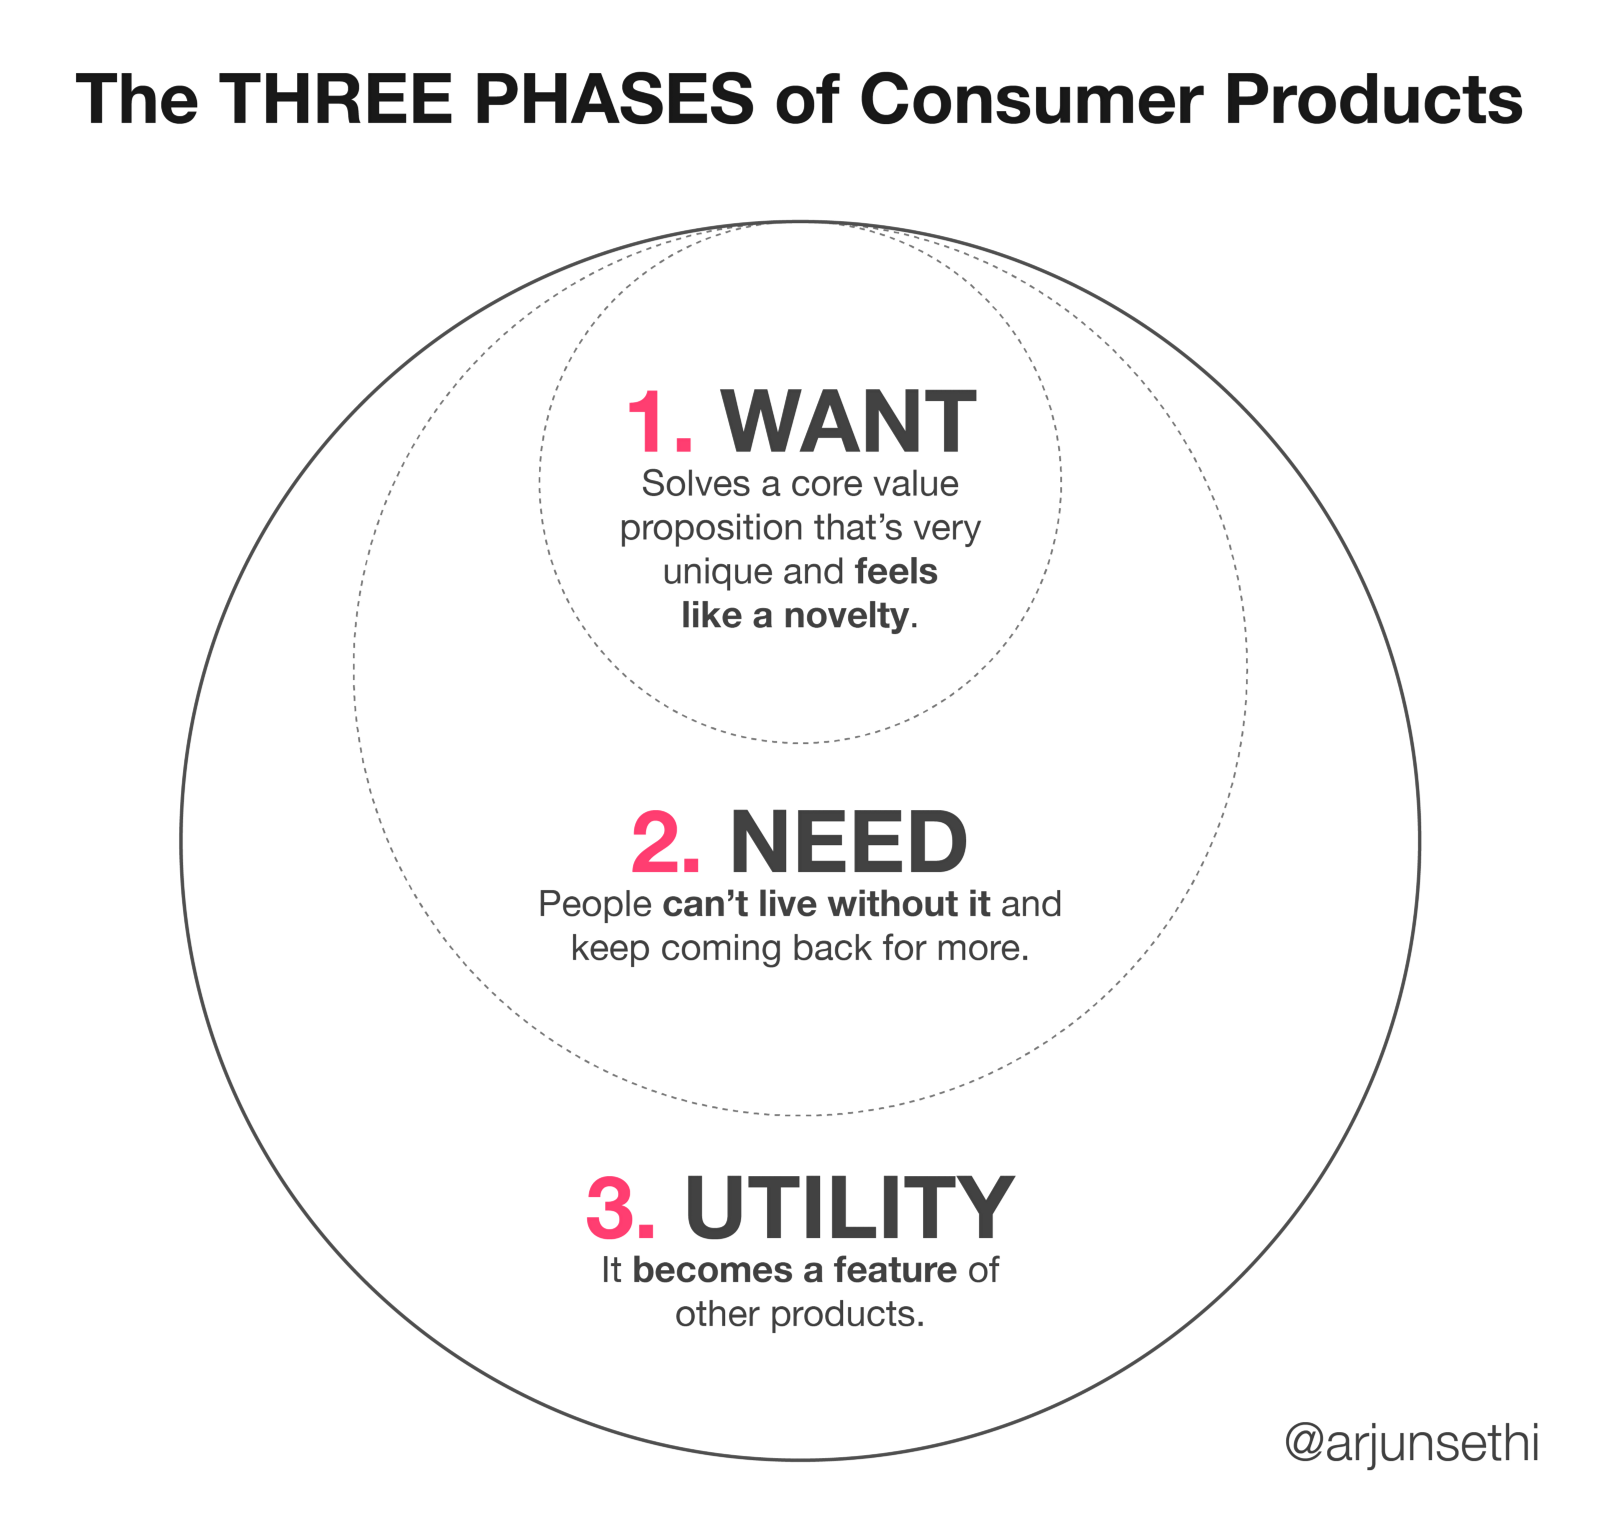 The Three Phases of Consumer Products